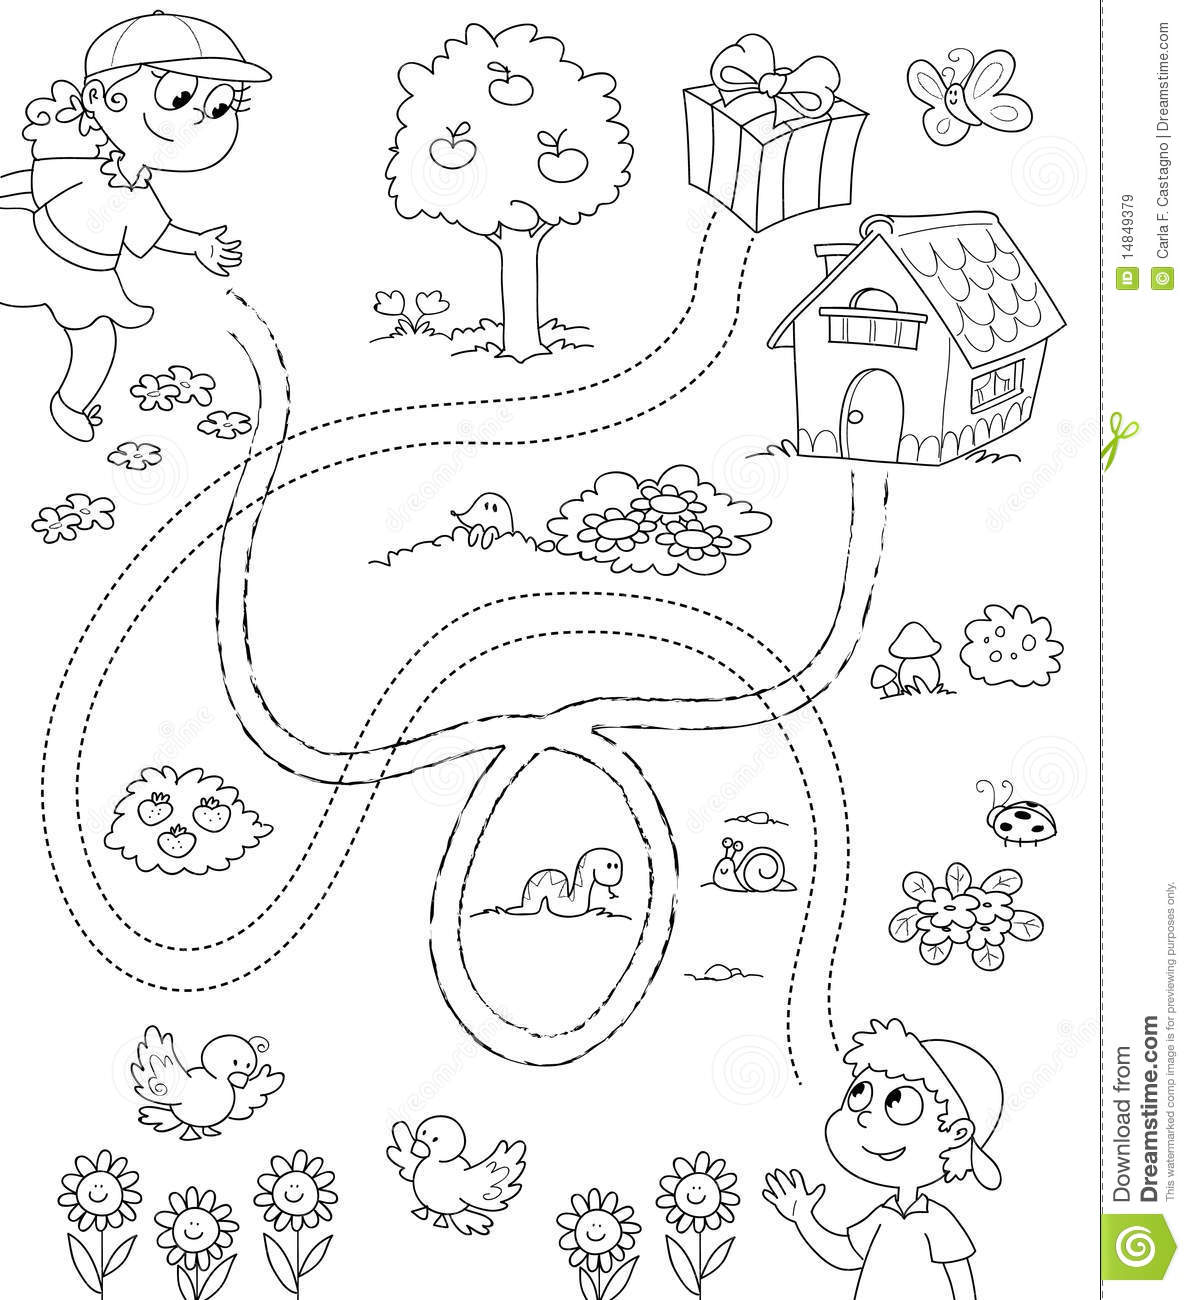 Coloring Game for children stock vector. Illustration of ...